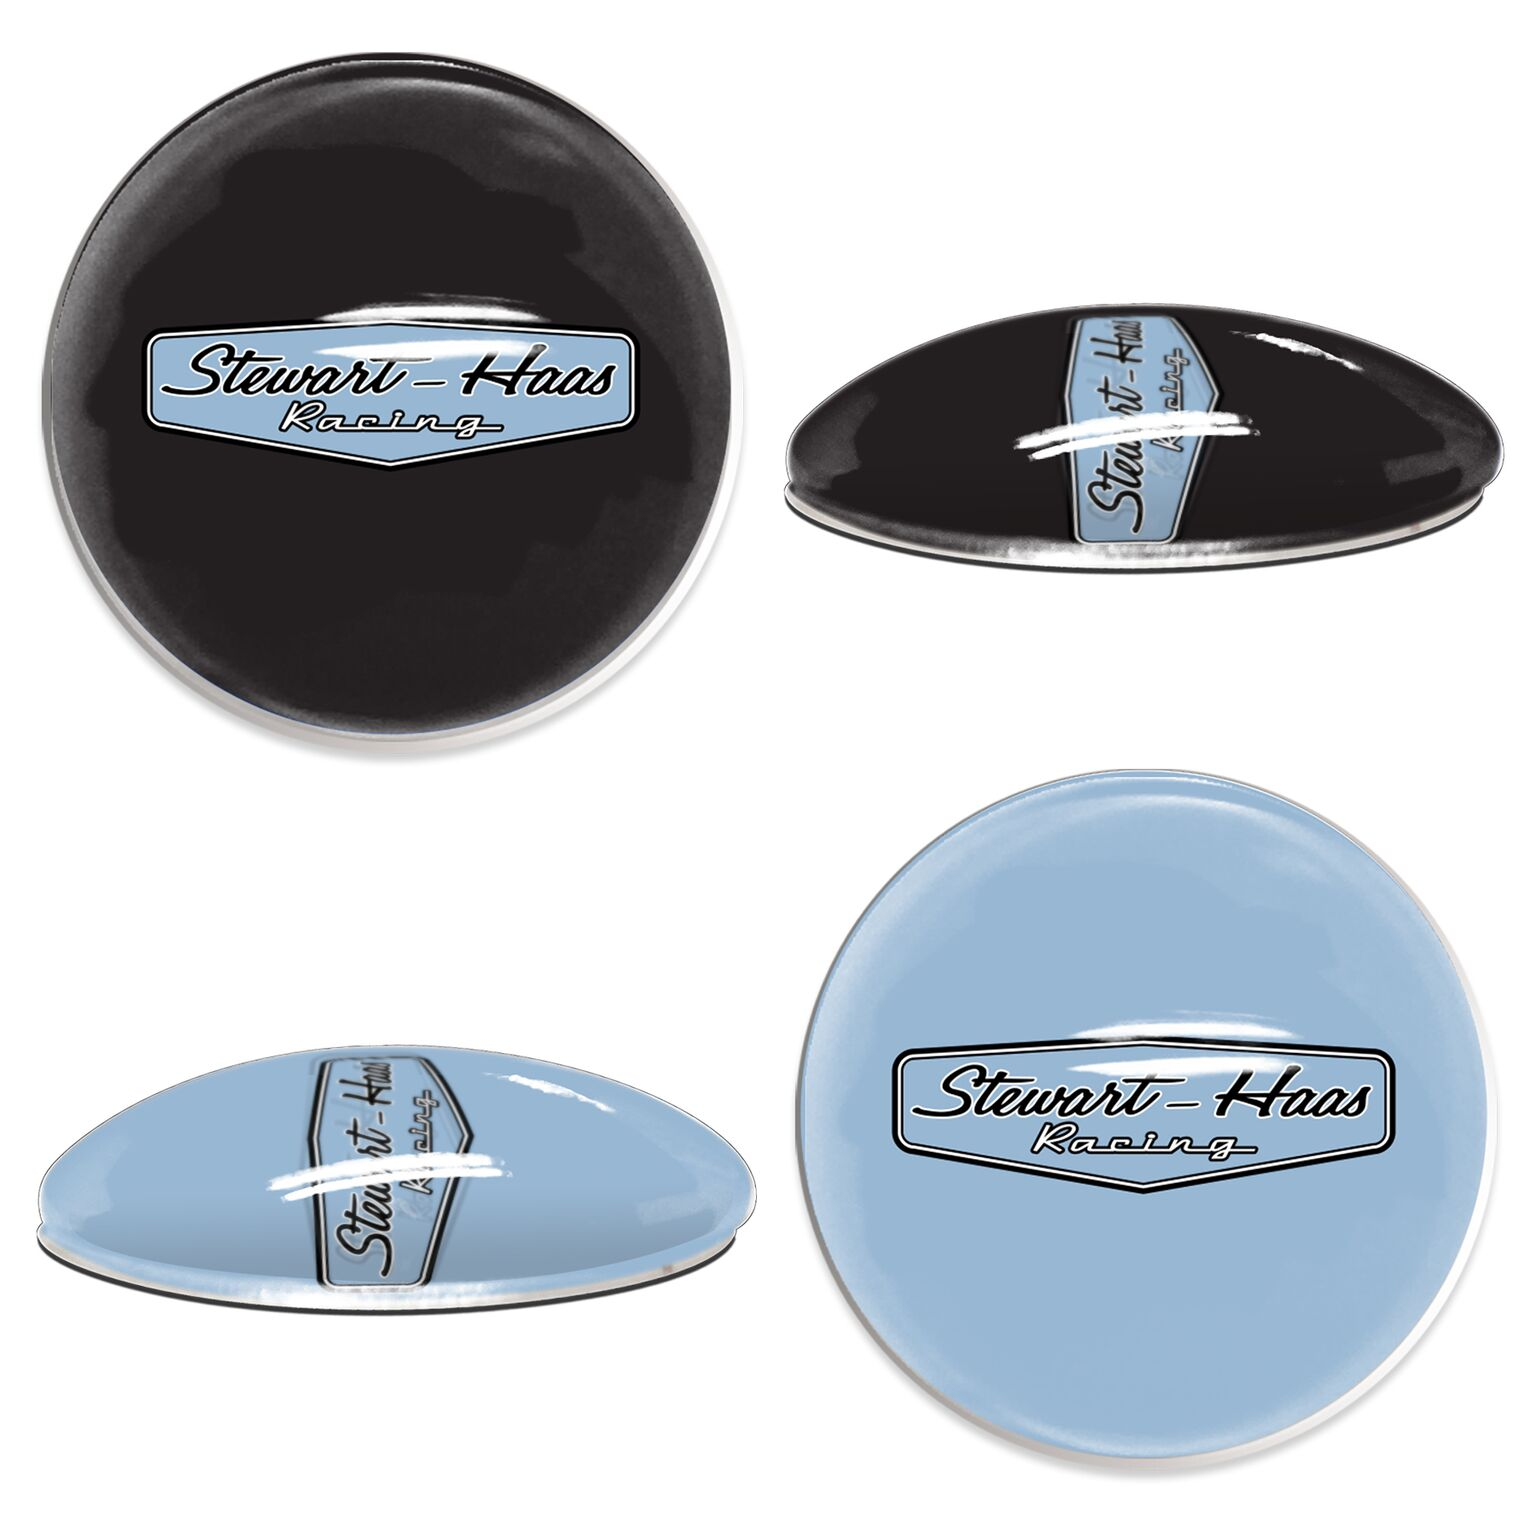 Exclusive Stewart-Haas Racing Sport Dott Magnets